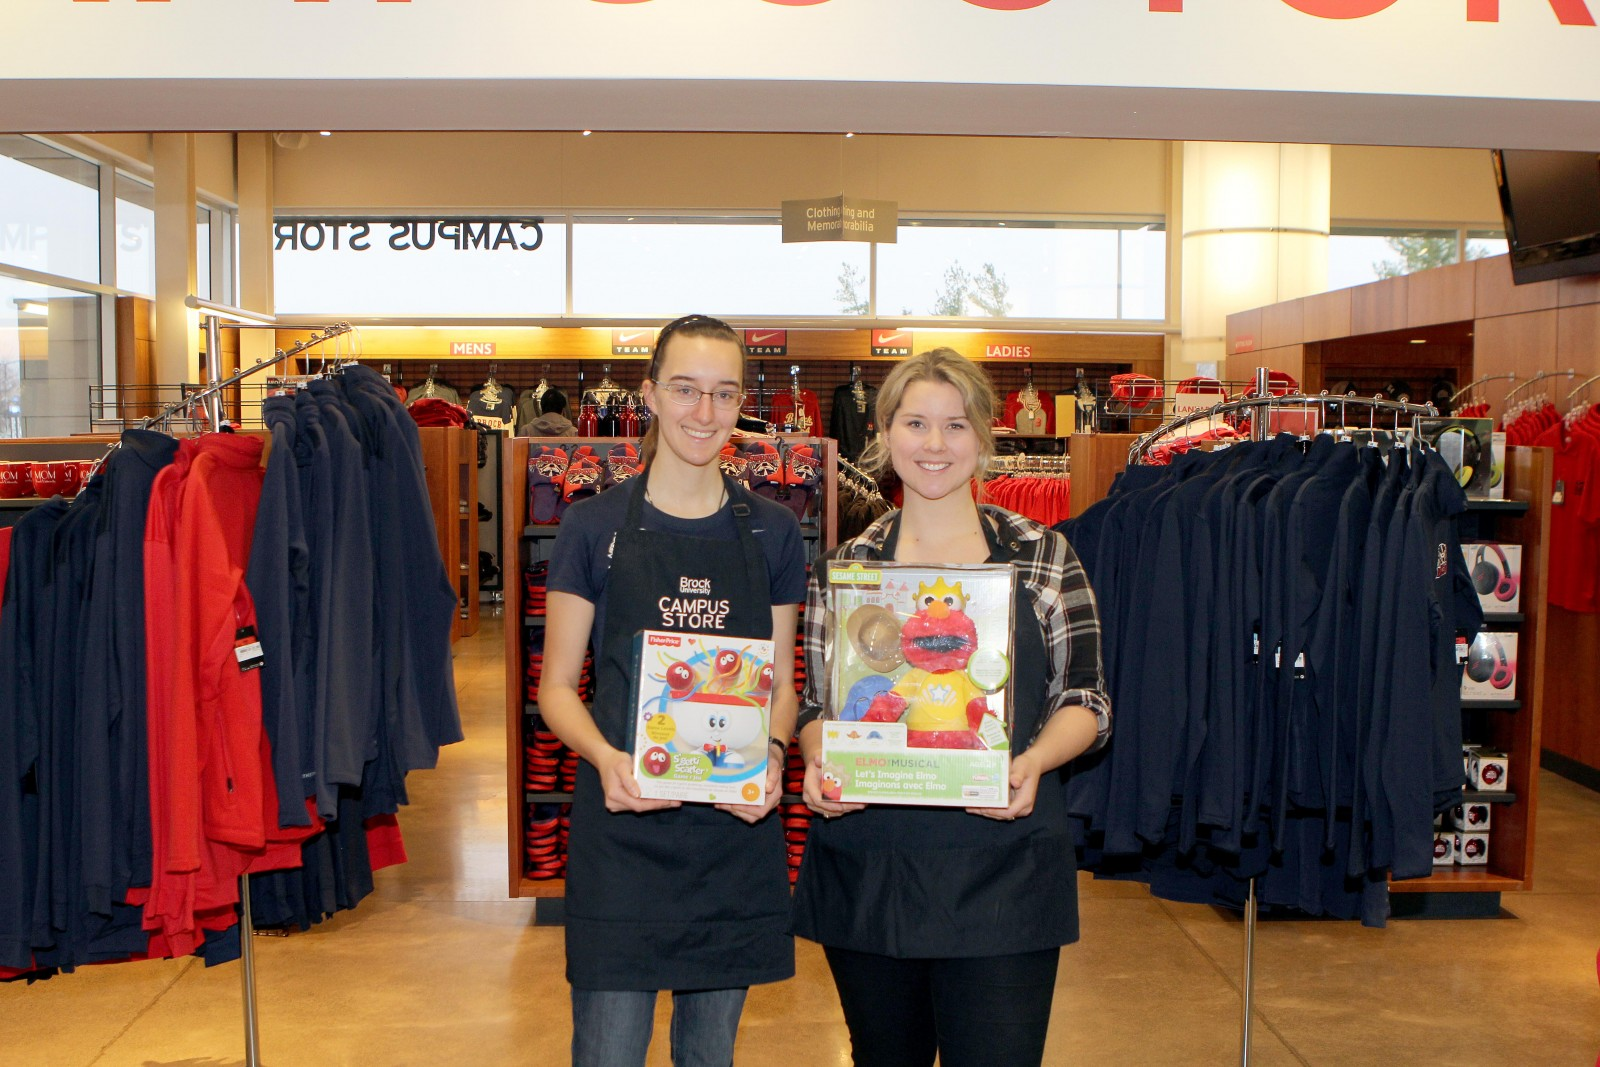 Campus store employees Laurie Taylor, left, and Hayley Clifford show off some of the gifts donated for Community Care.